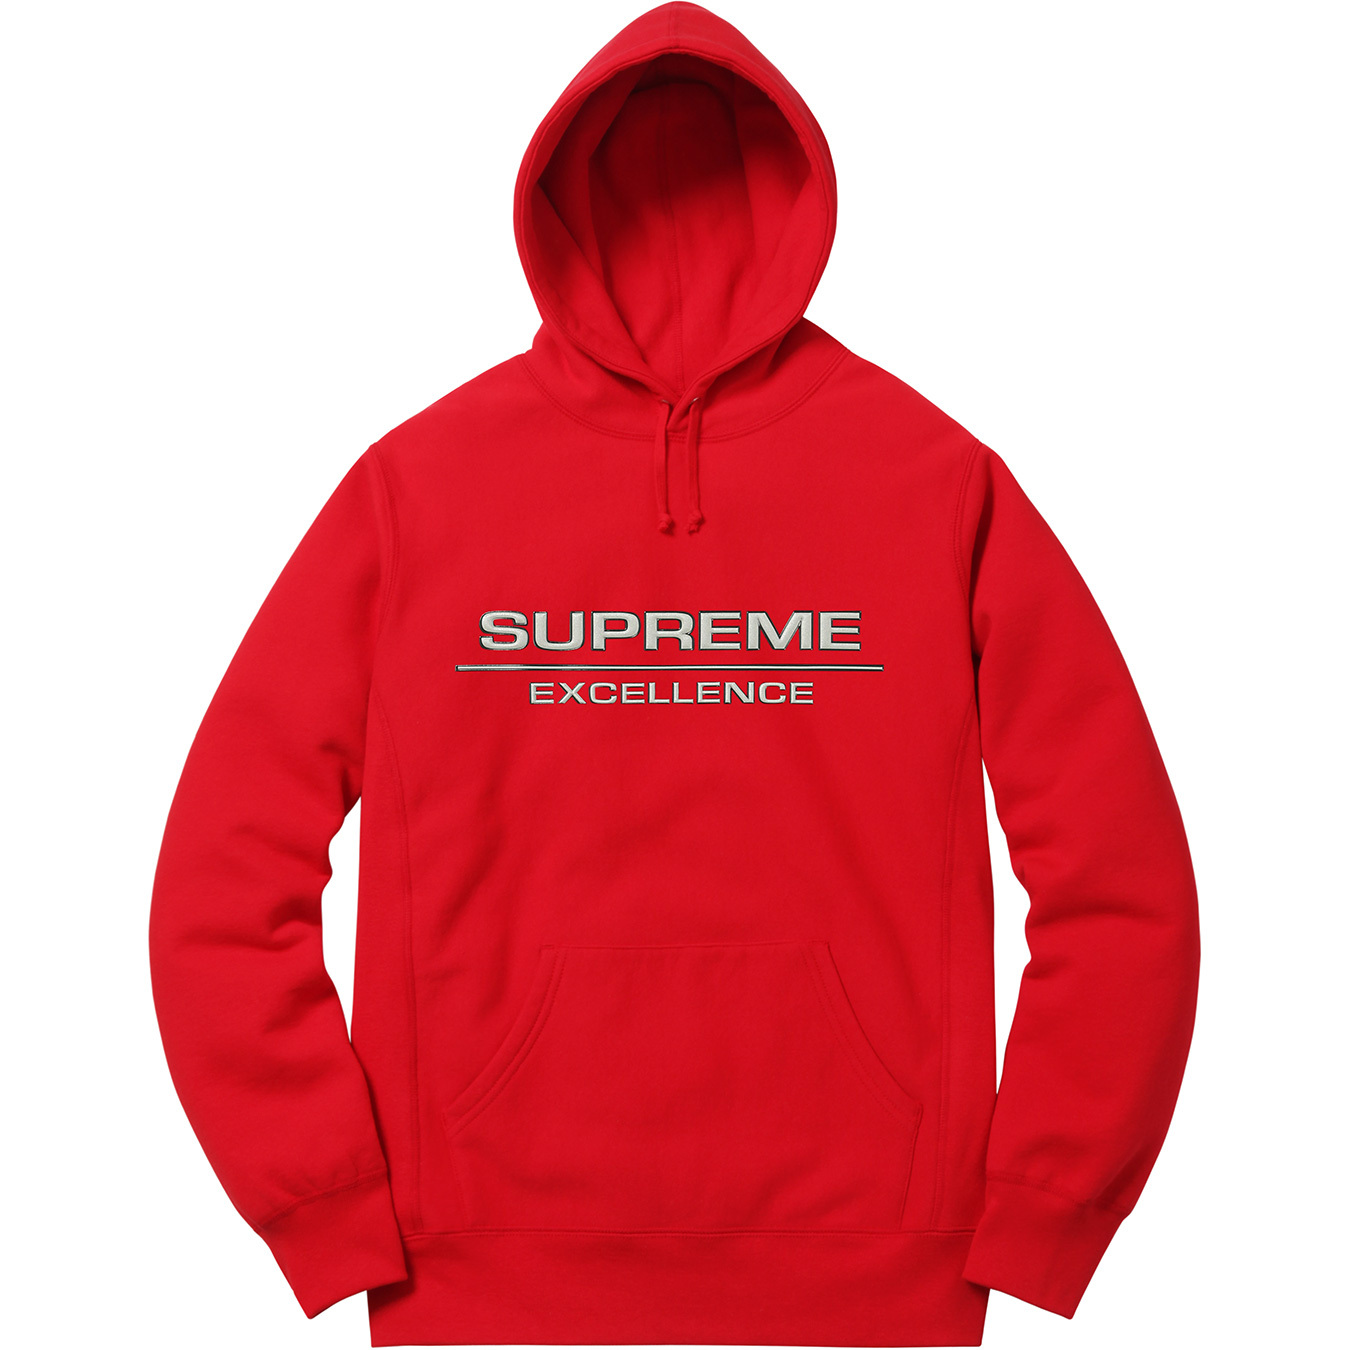 Pre-Owned Supreme Reflective Excellence Hooded Sweatshirt Red   ModeSens